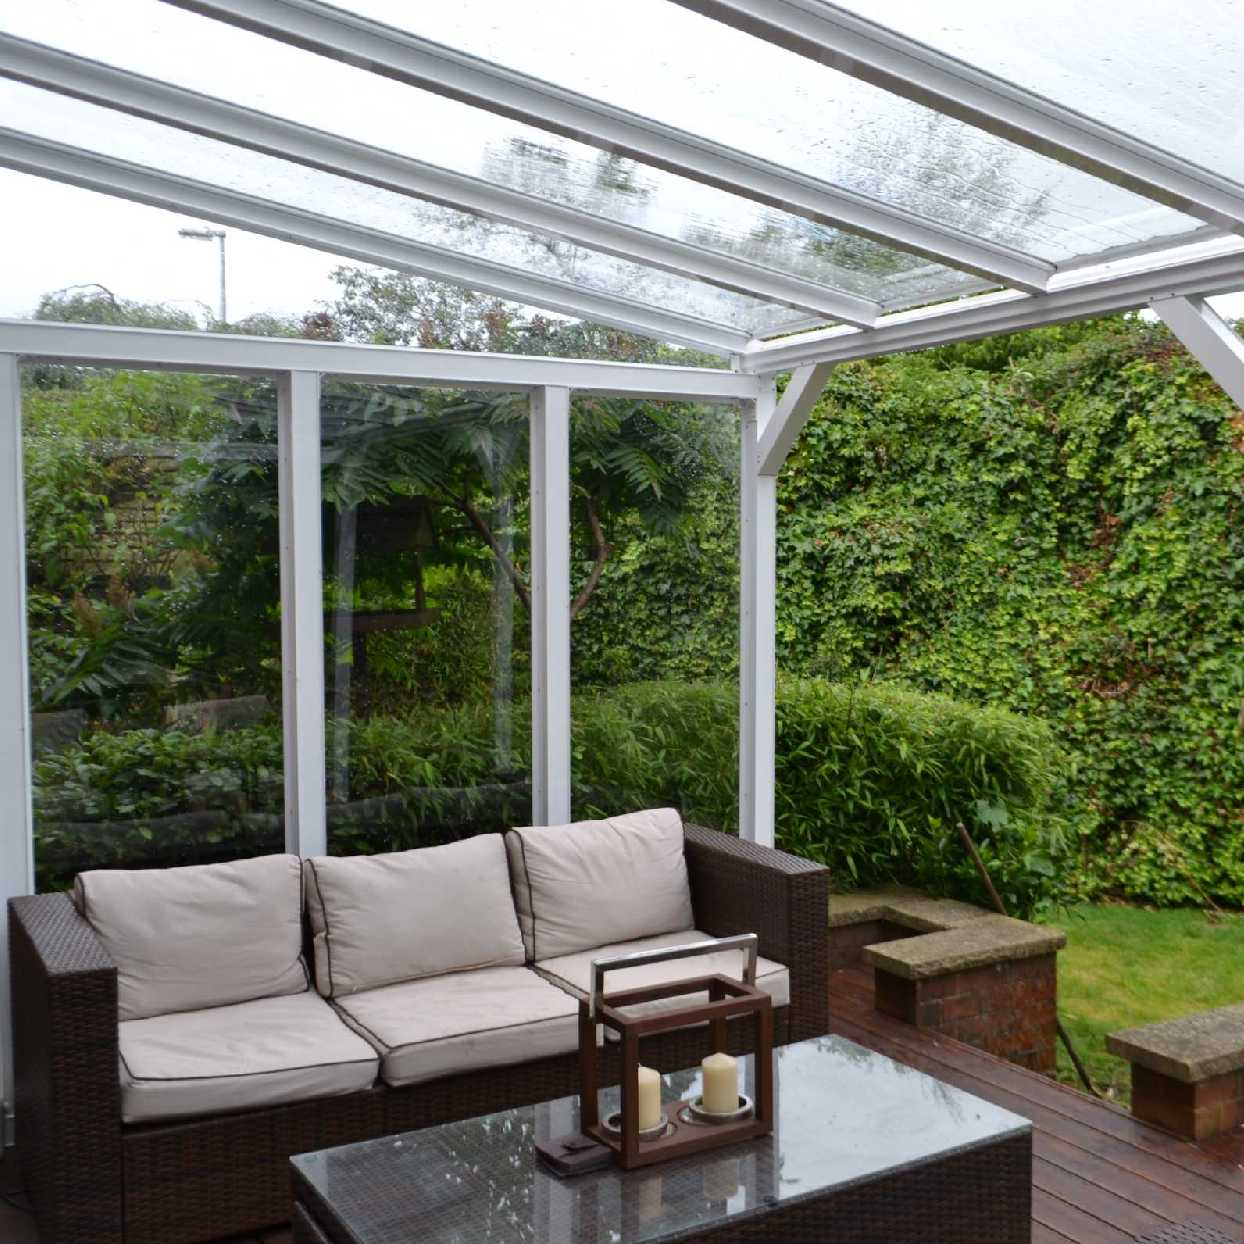 Great selection of Omega Smart Lean-To Canopy with 16mm Polycarbonate Glazing - 5.6m (W) x 4.0m (P), (3) Supporting Posts